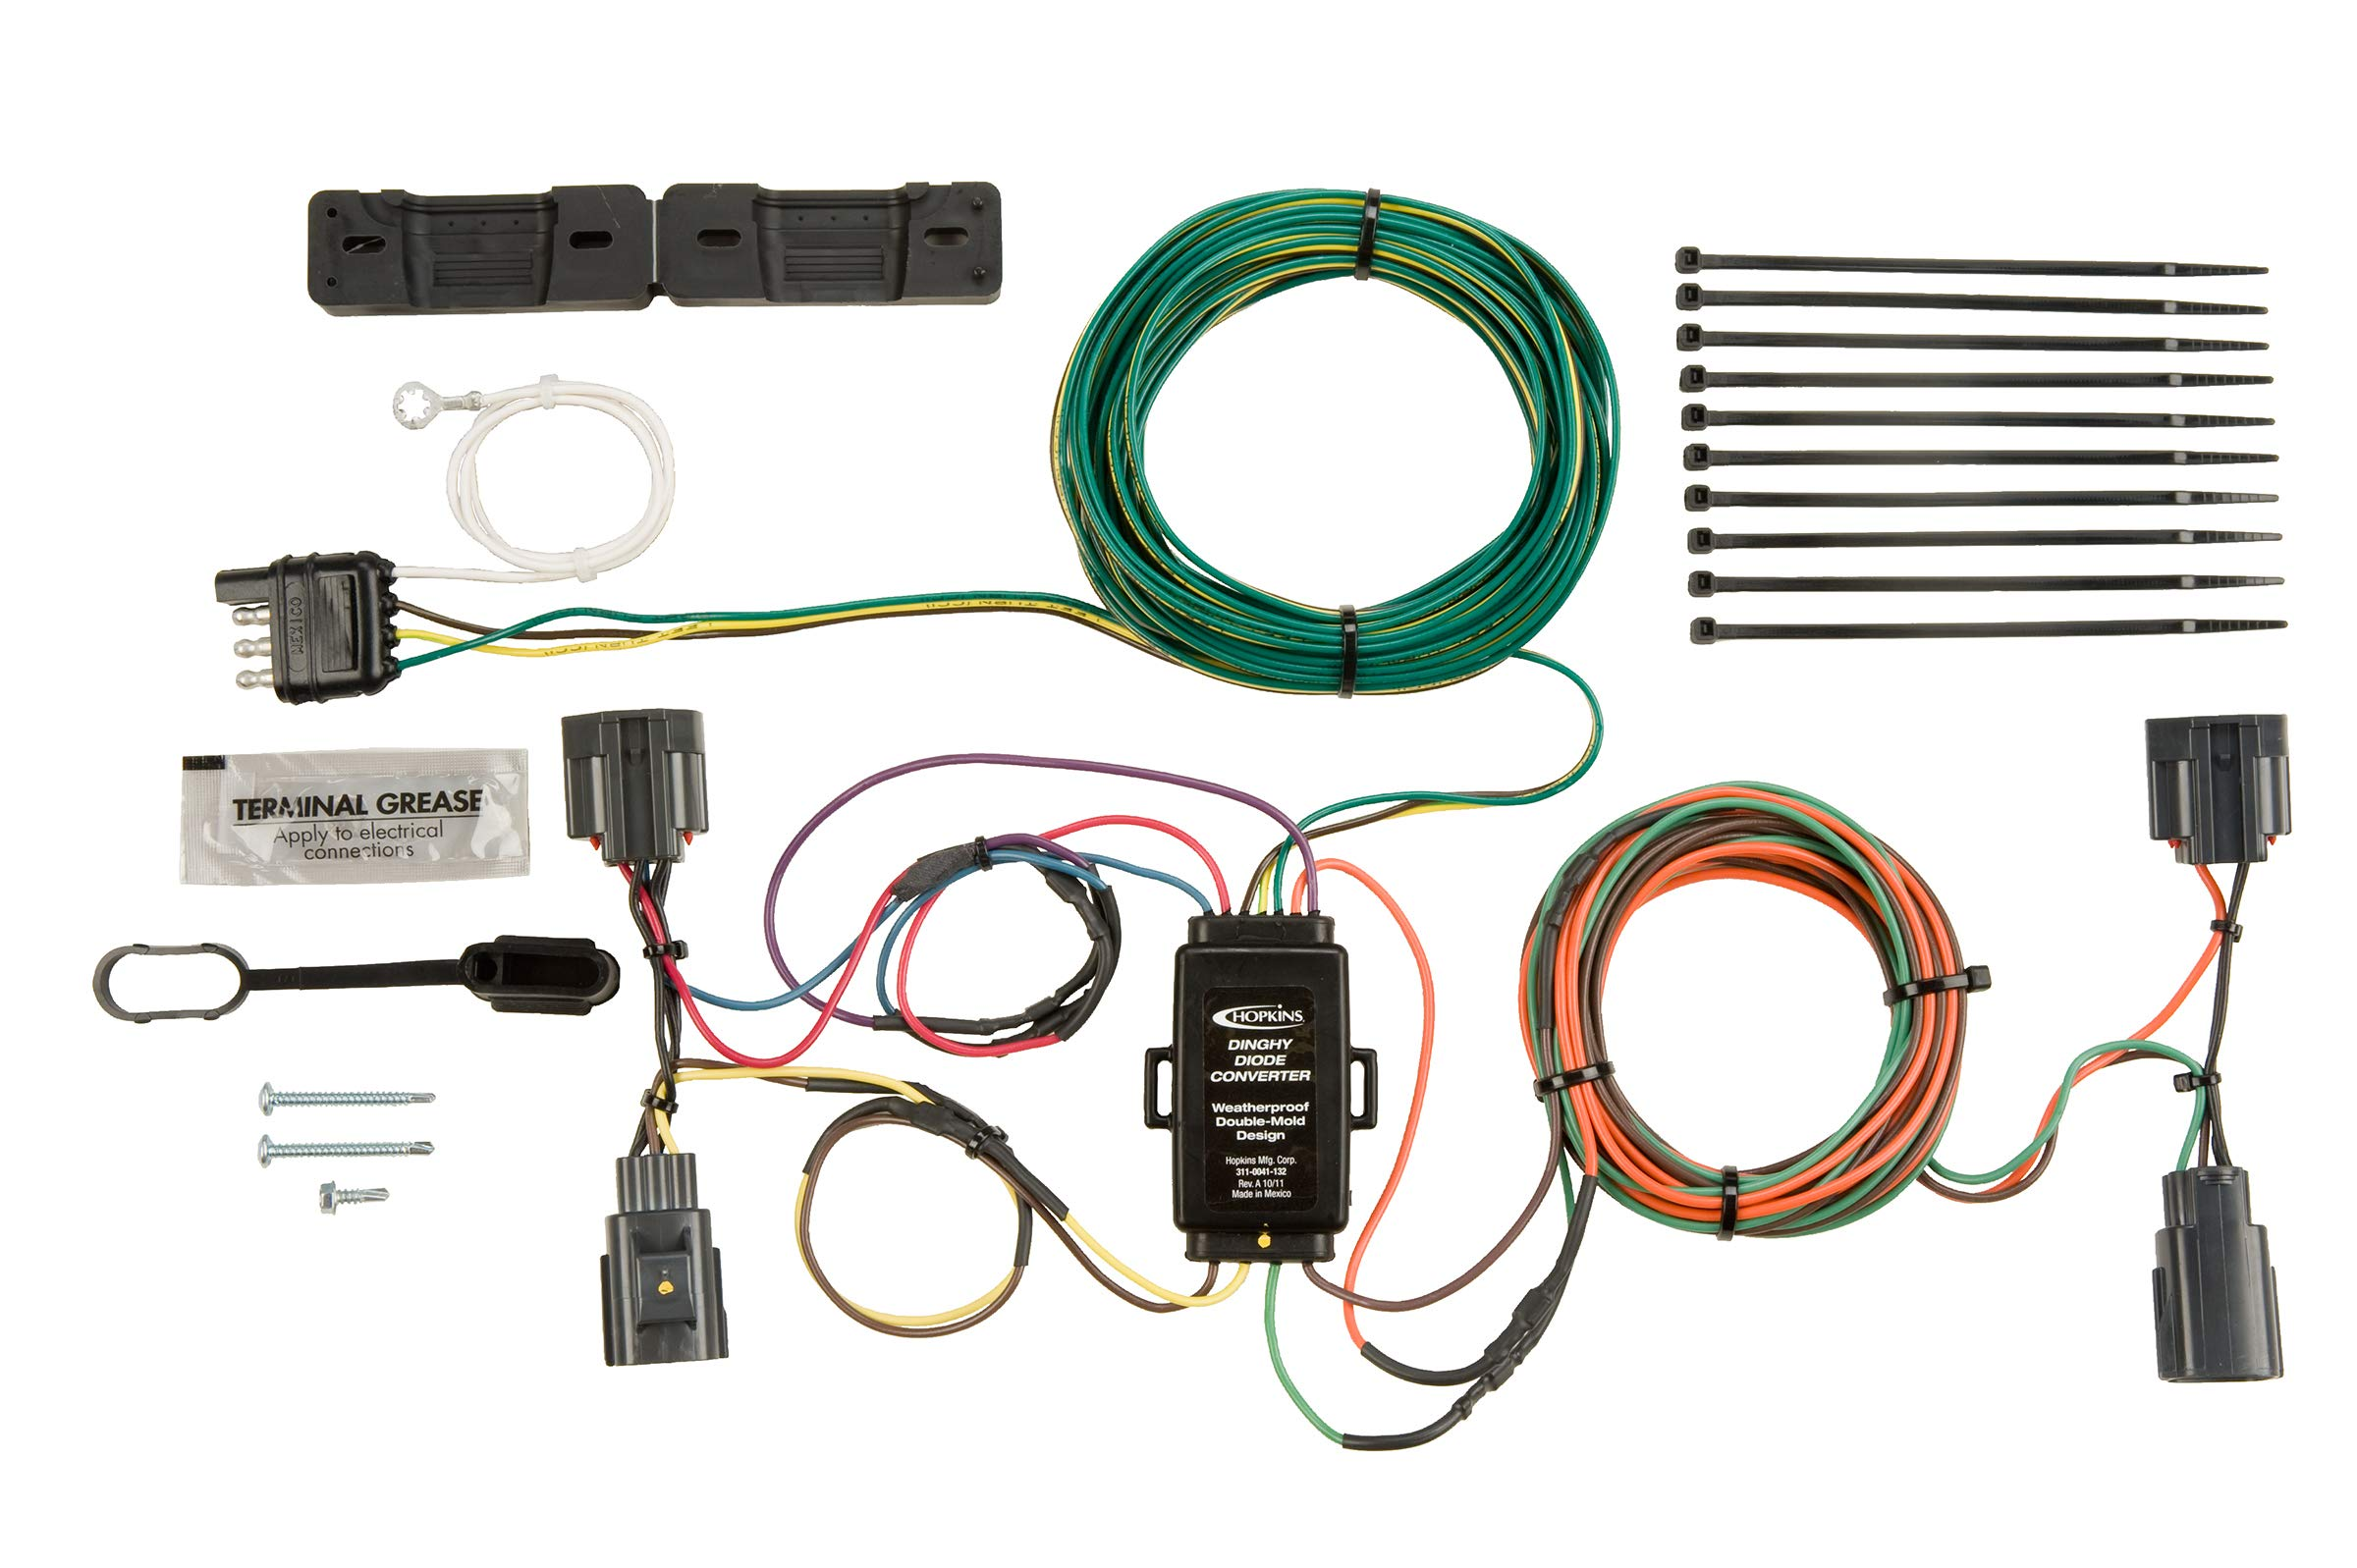 Hopkins 56200 Plug-In Simple Towed Vehicle Wiring Kit by Hopkins Towing Solutions